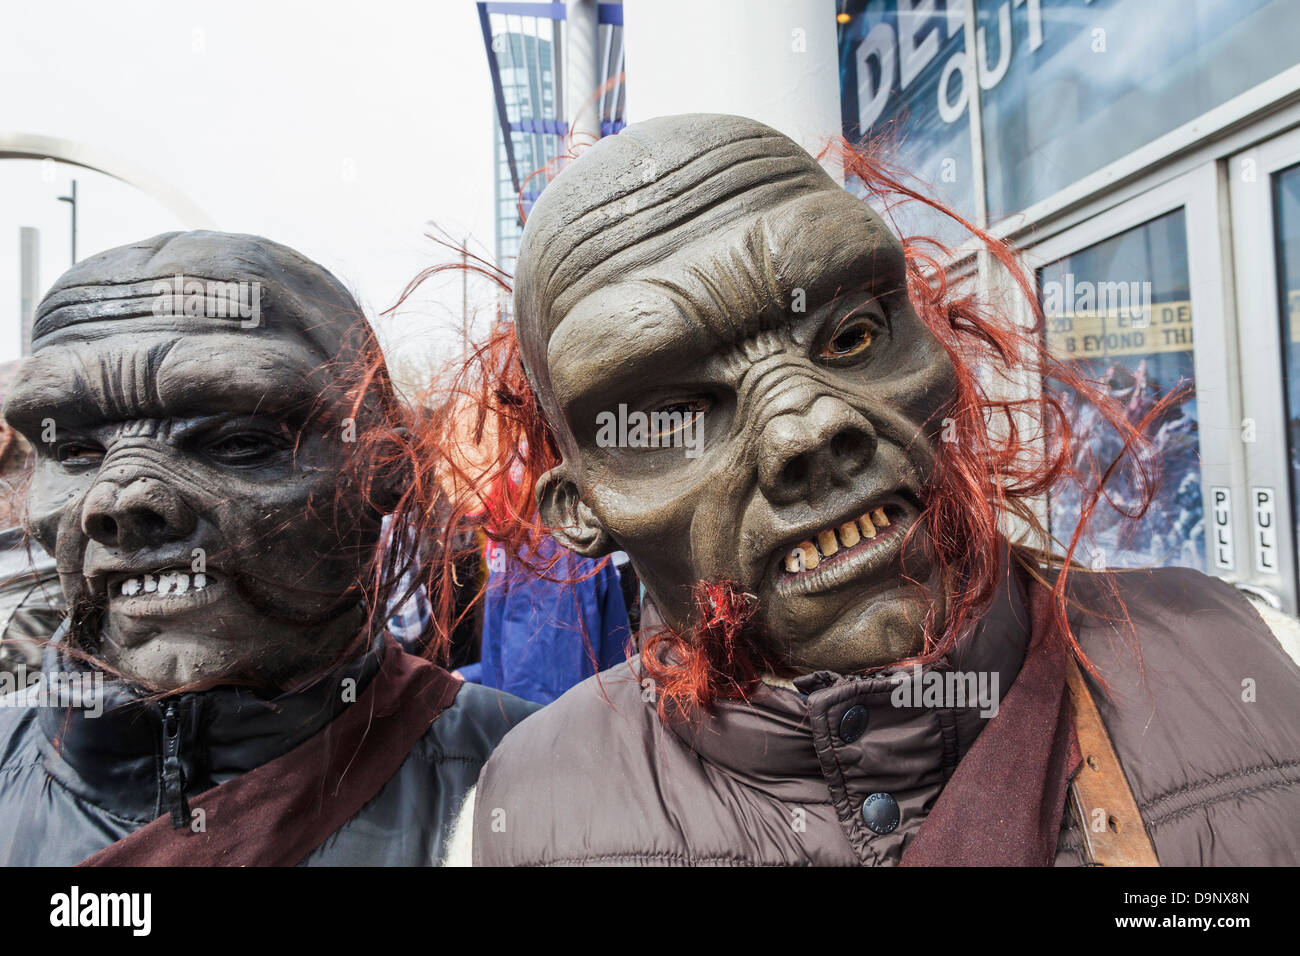 England,London,Stratford,Annual Sci-fi Costume Parade,Sci-fi Monsters  Stock Photo